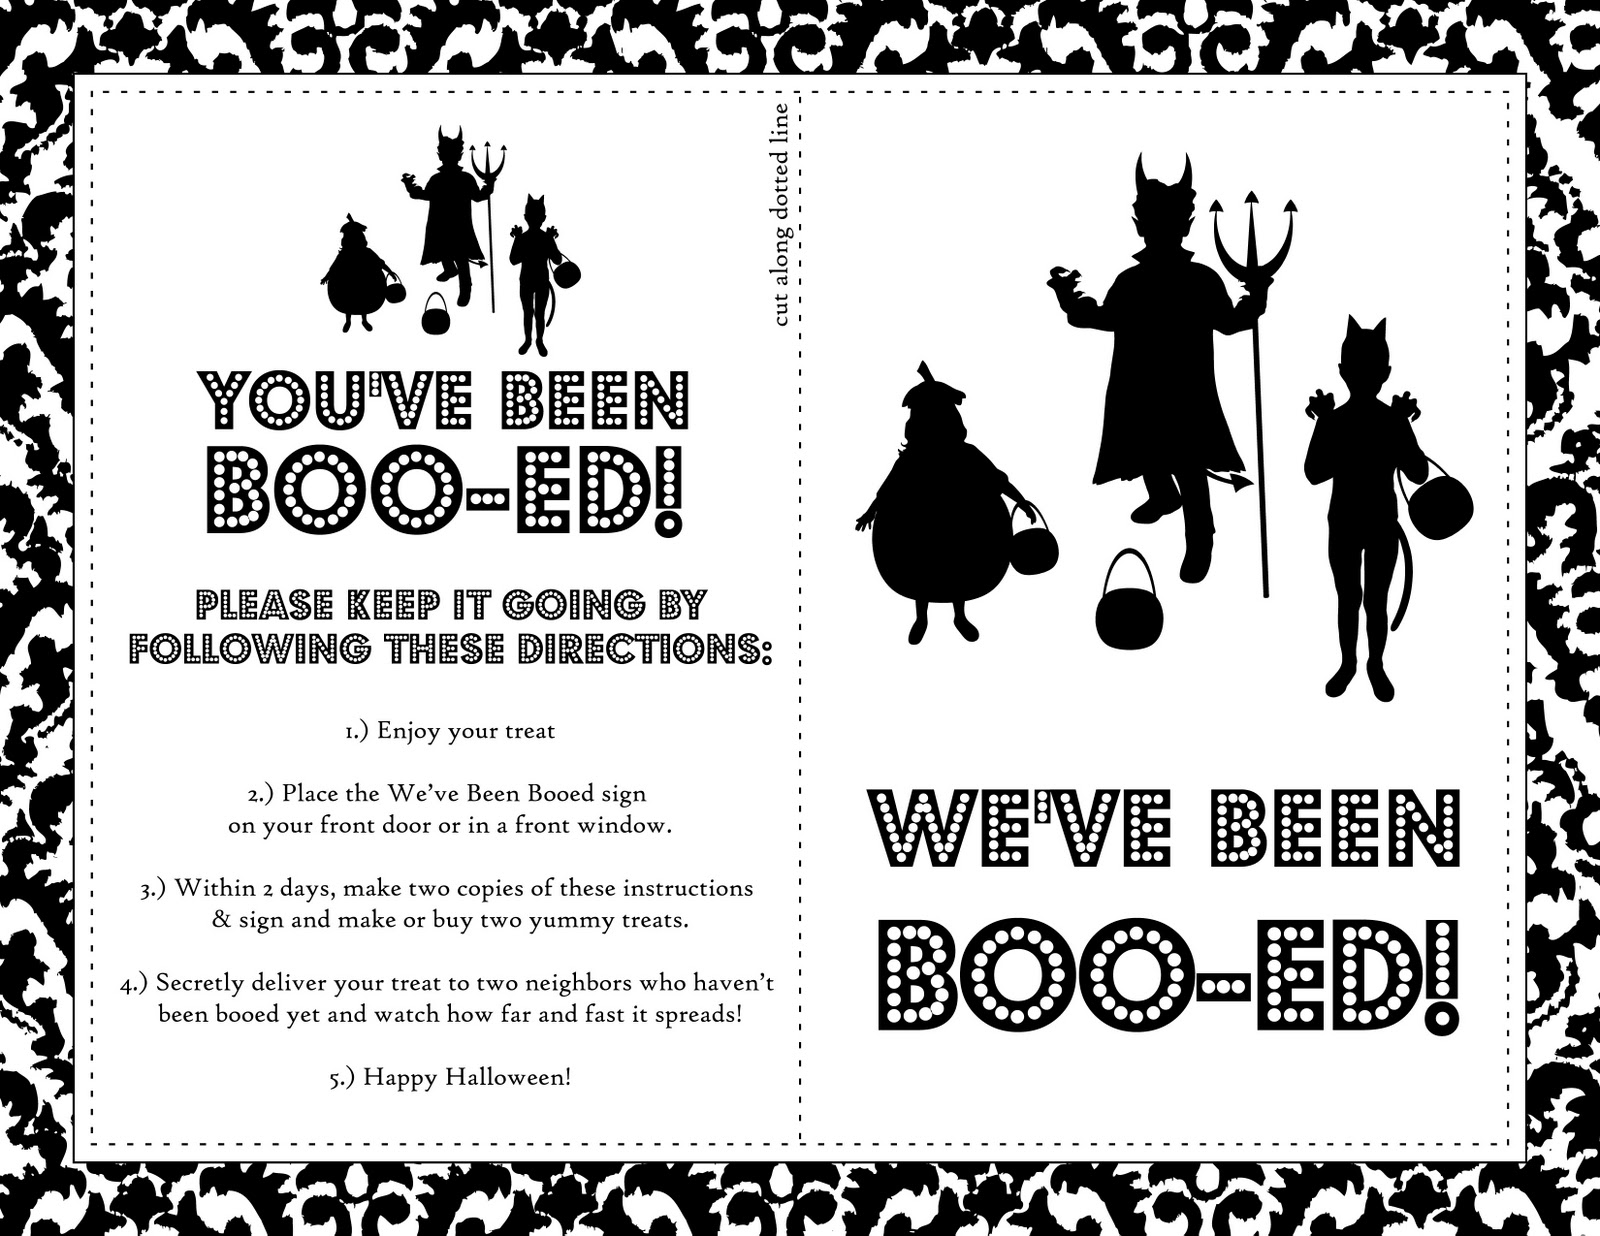 image about Booed Signs Printable titled Very easily Silhouettes: Cost-free Printable Boo Indicator for Halloween